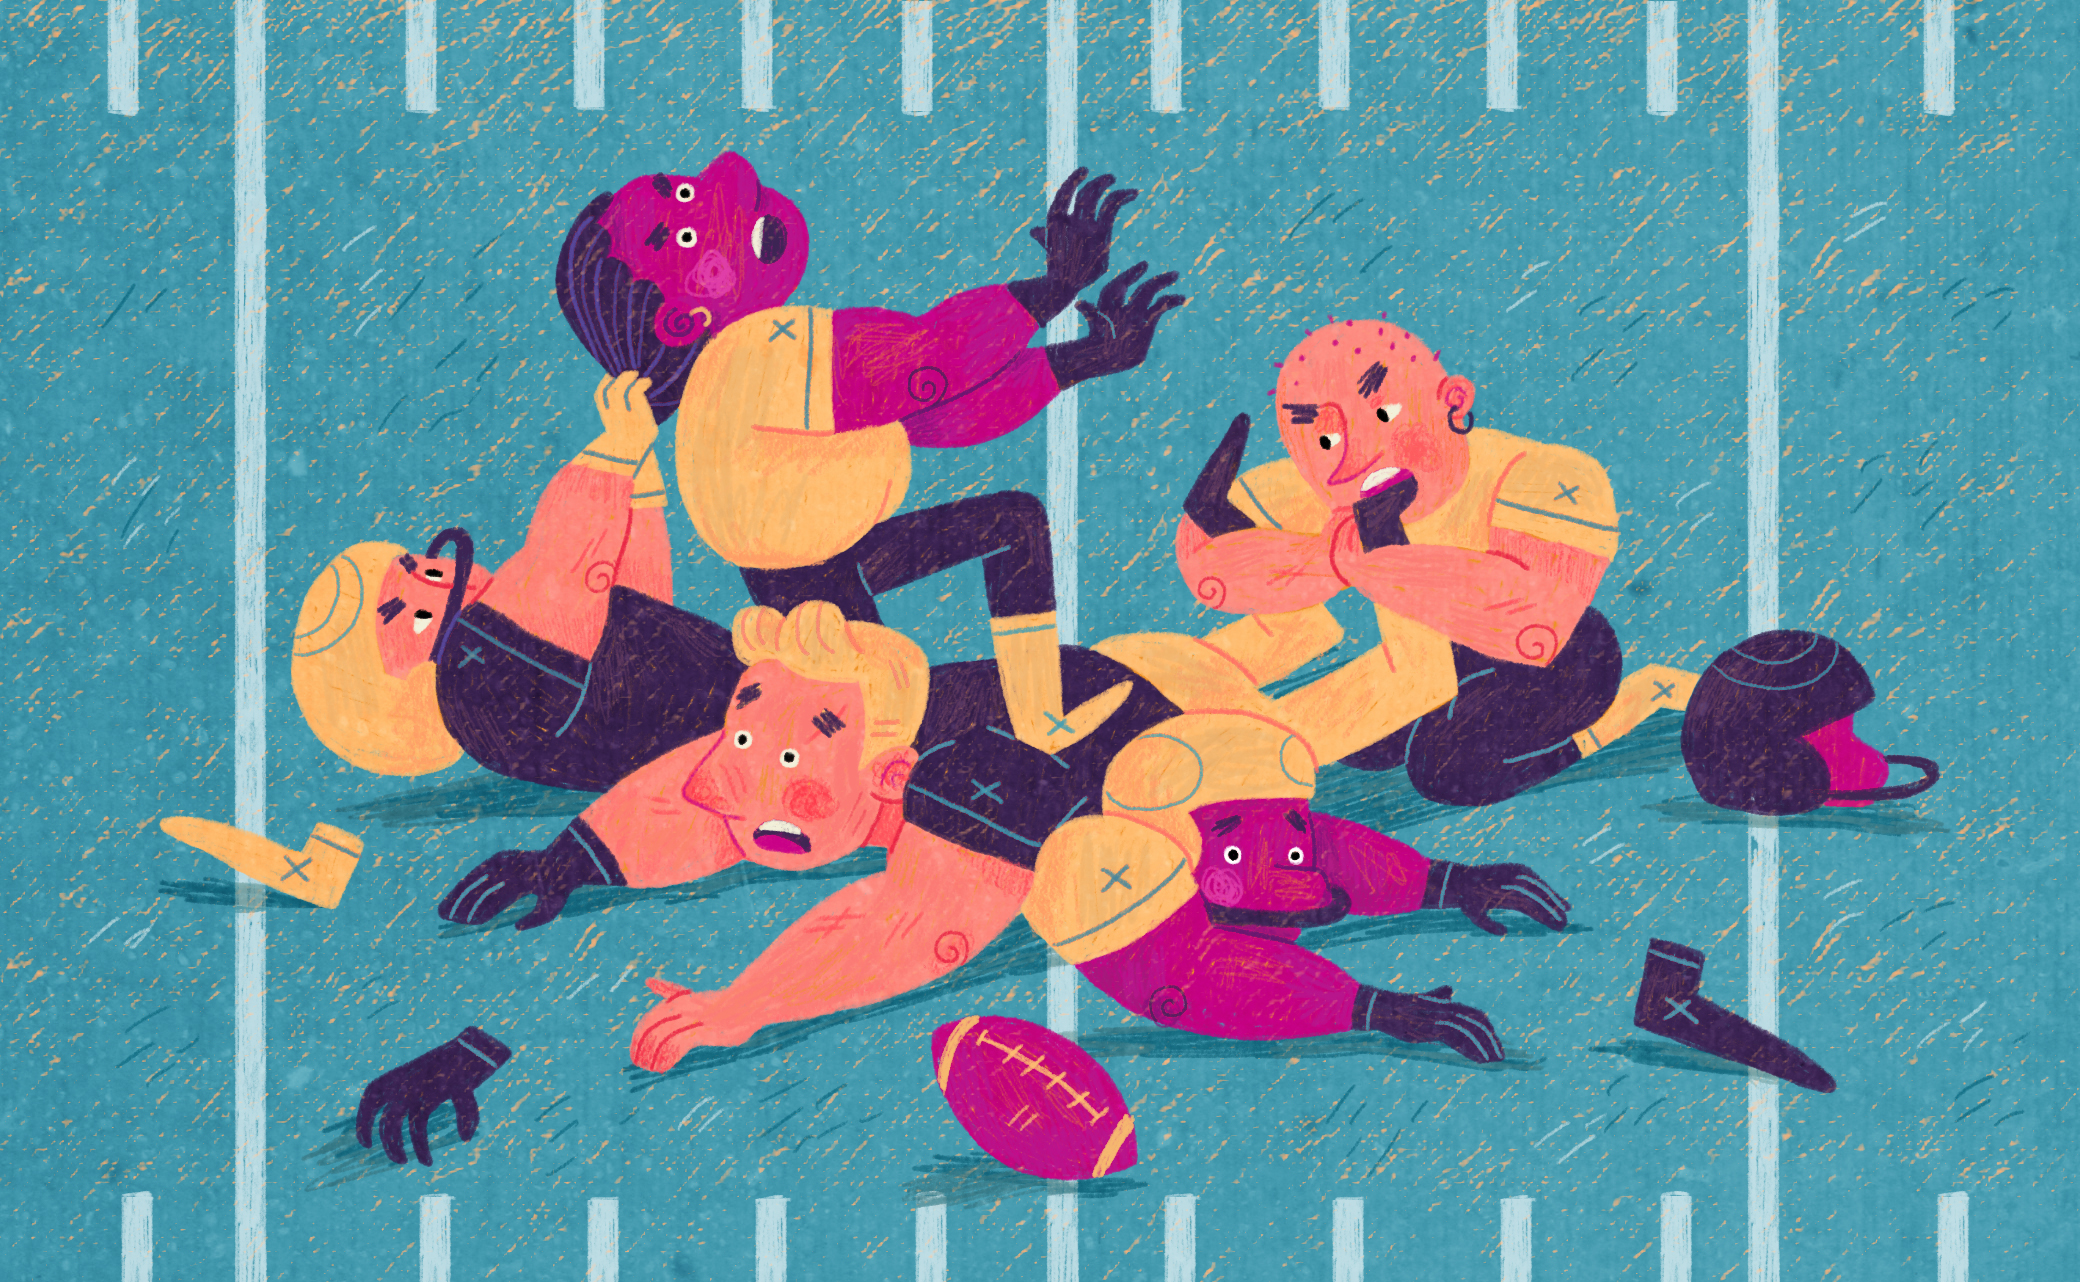 Cute illustration, in the style of a children's book, of various players biting, scratching, and smashing one another while their equipment goes flying.